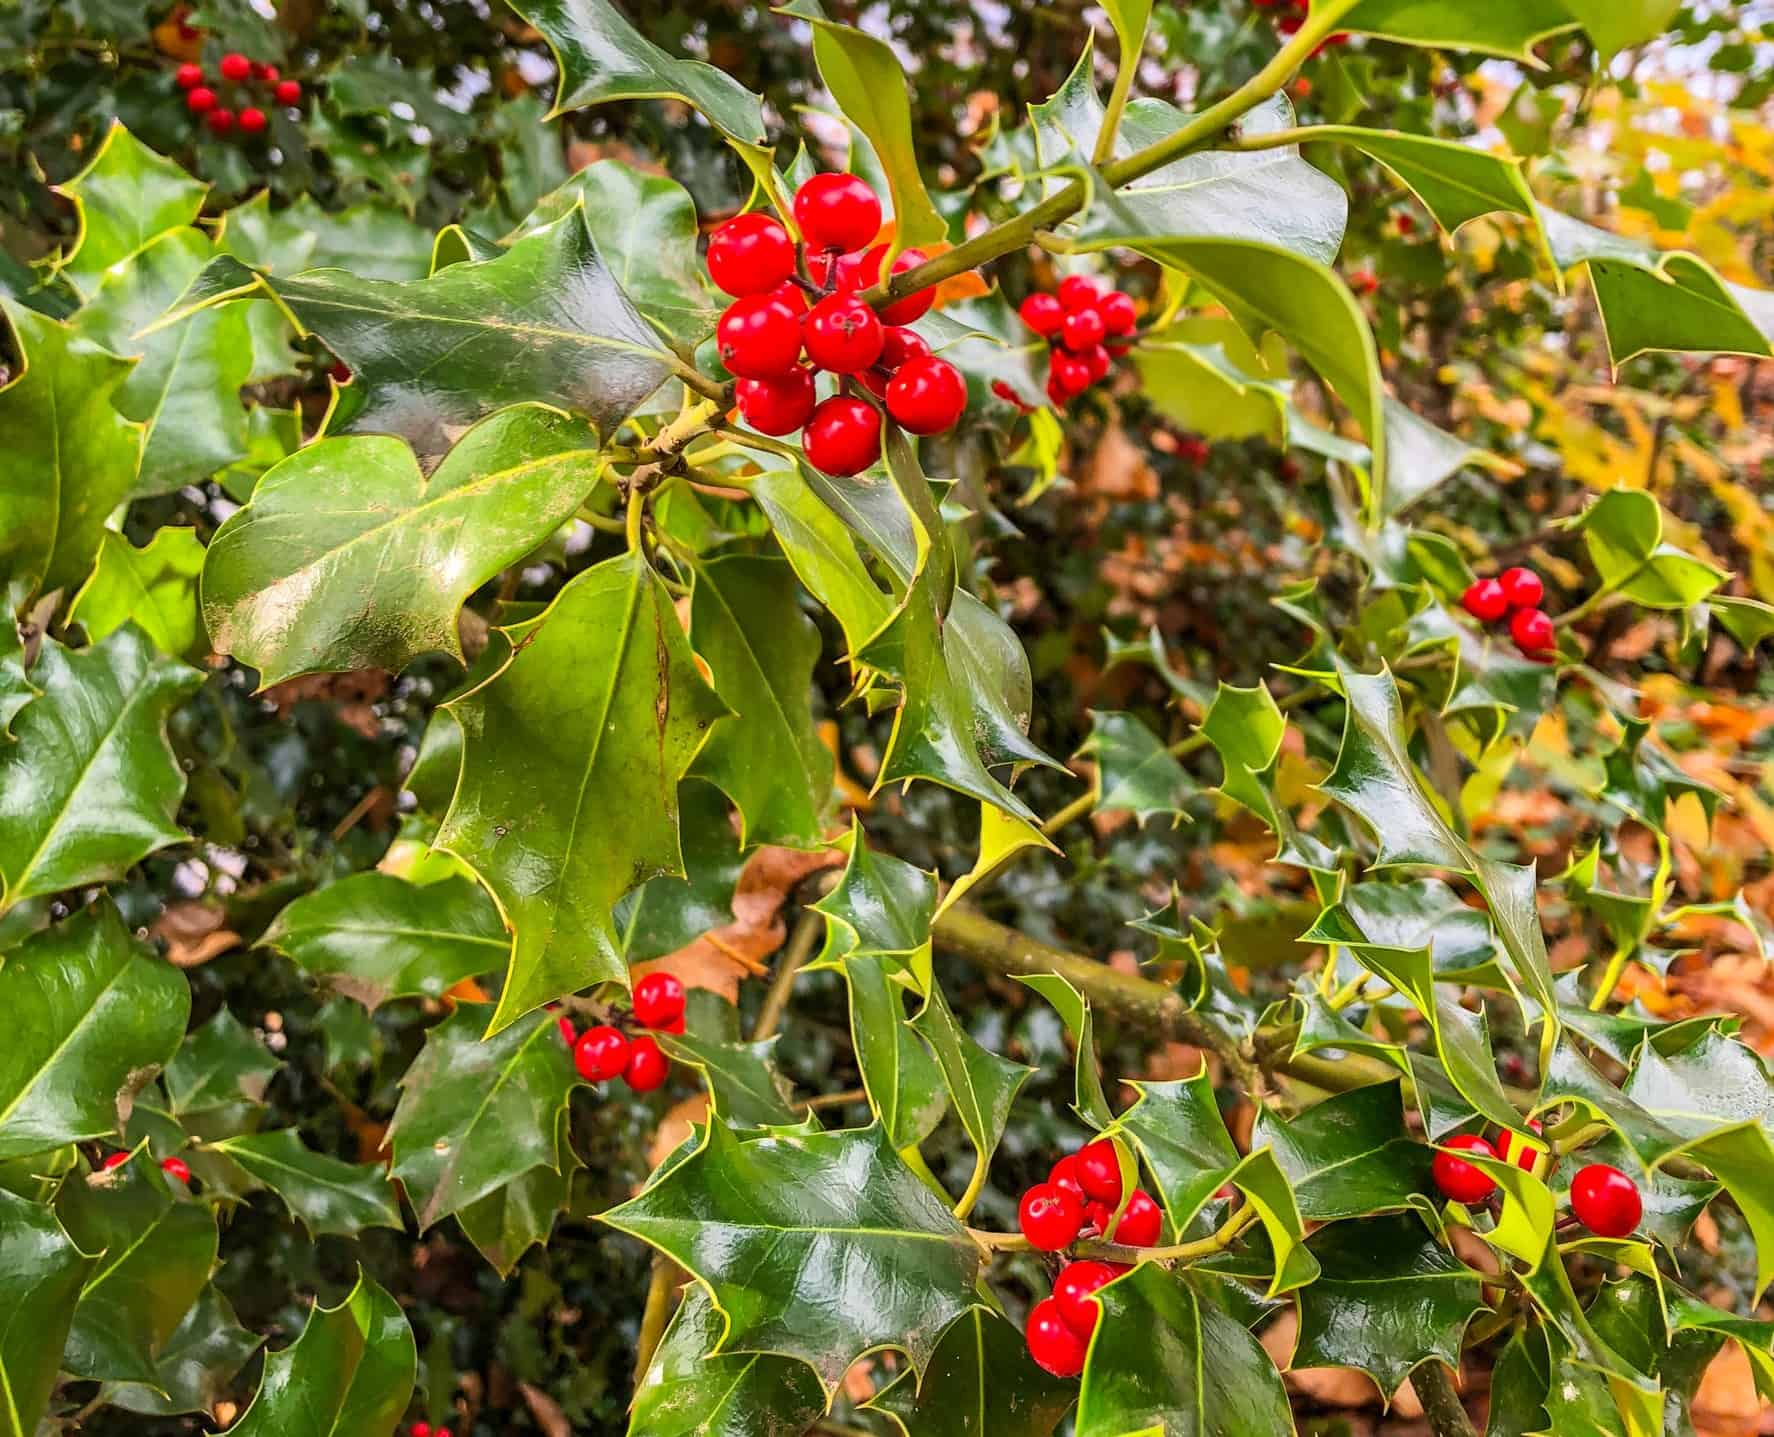 Common holly is well-known for its spiny leaves.